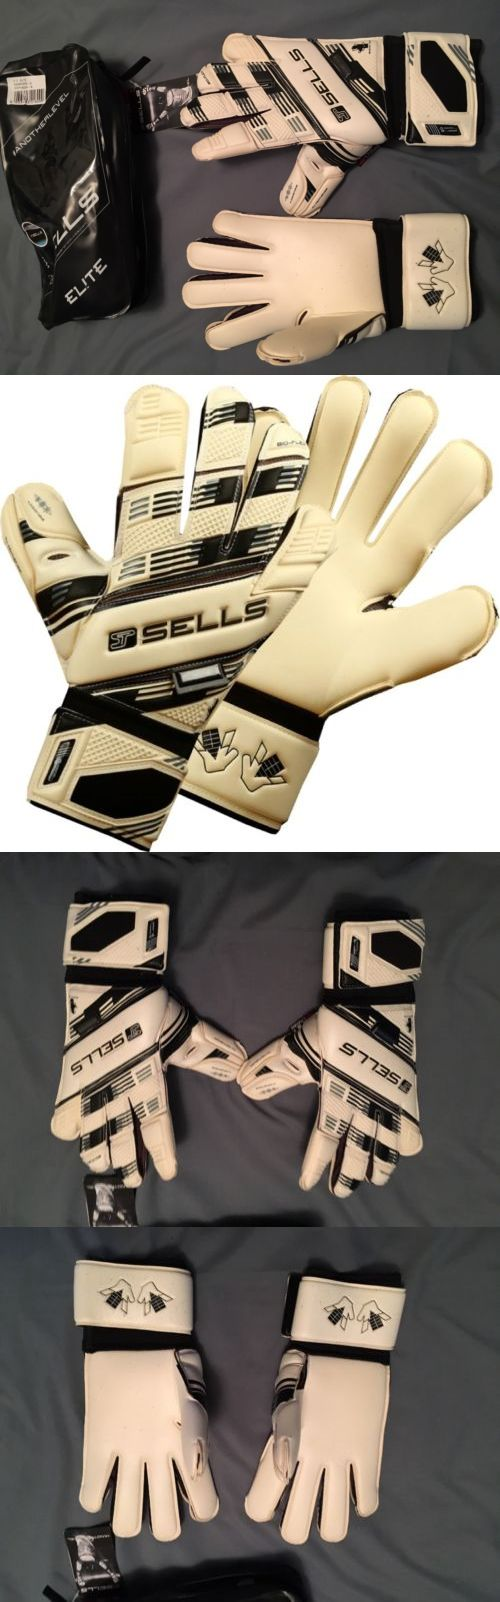 Gloves 57277: Sells Vv Elite Exosphere Goalkeeper Gloves Size 9 -> BUY IT NOW ONLY: $50 on eBay!